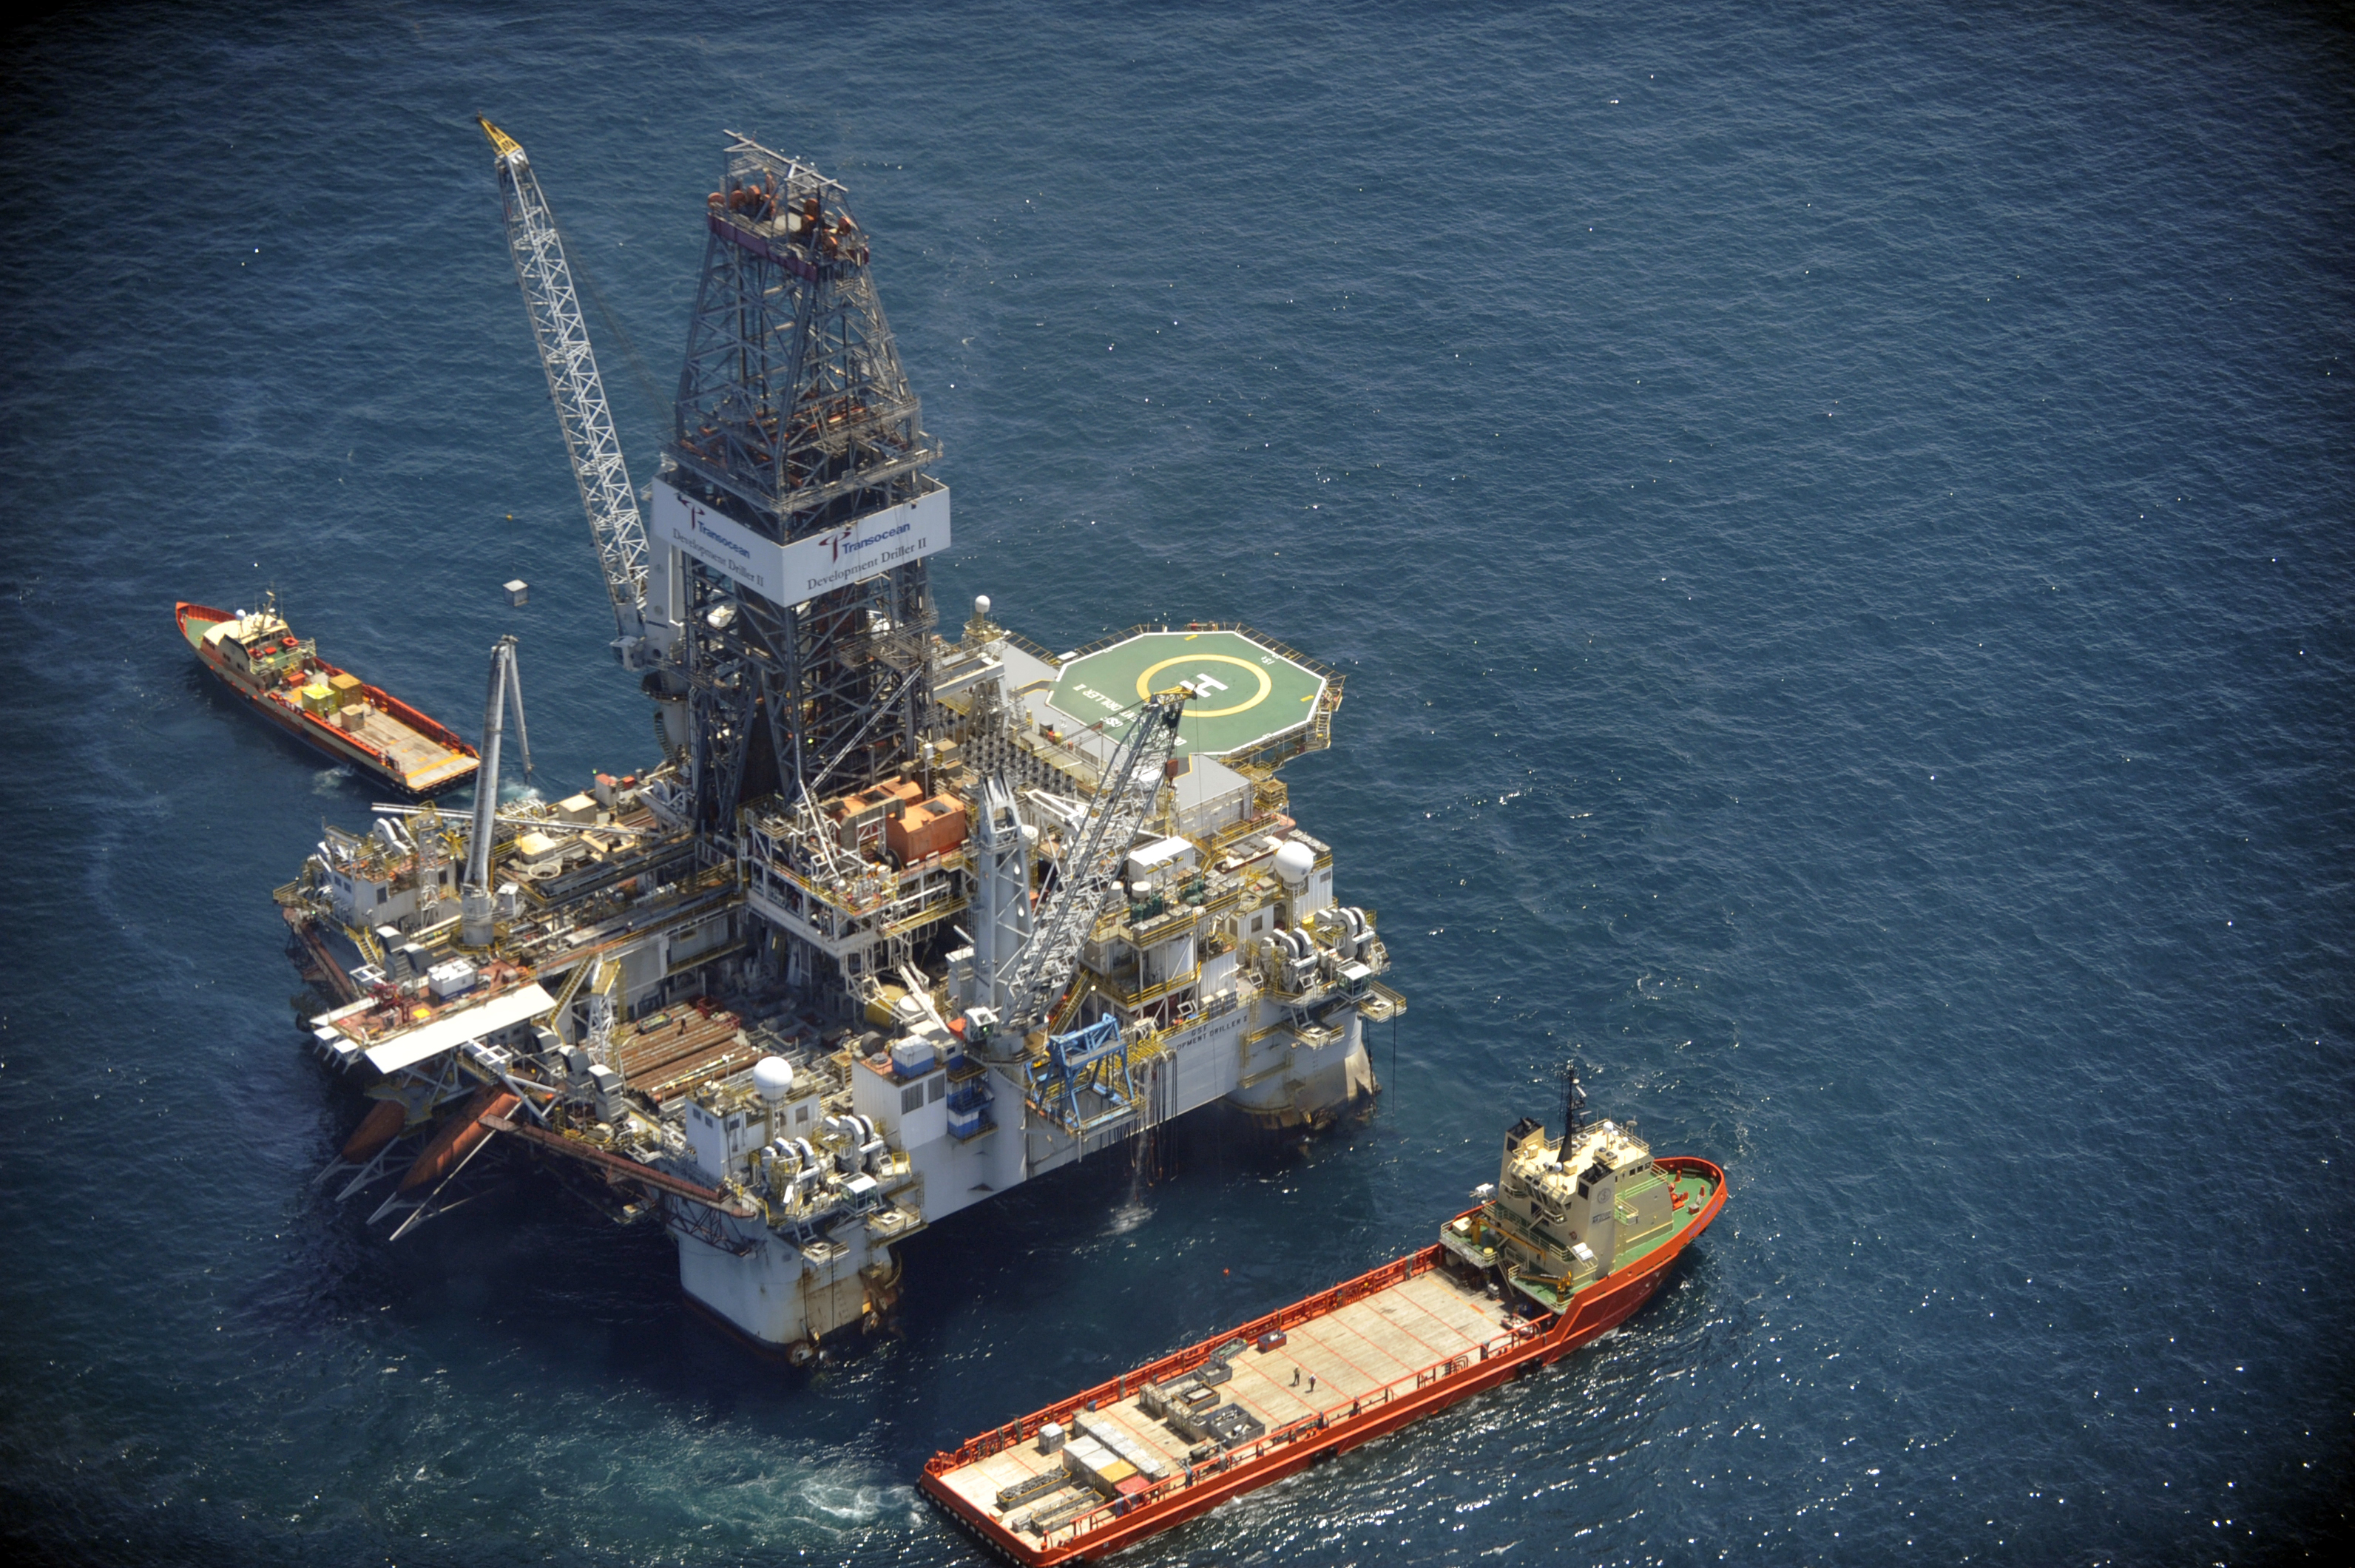 Transocean Development Driller drilling a relief well in the Gulf of Mexico to relieve the pressure on the Macondo well, 2010. This rig can drill to depths of 37,500 feet in as much as 7,500 feet of water.